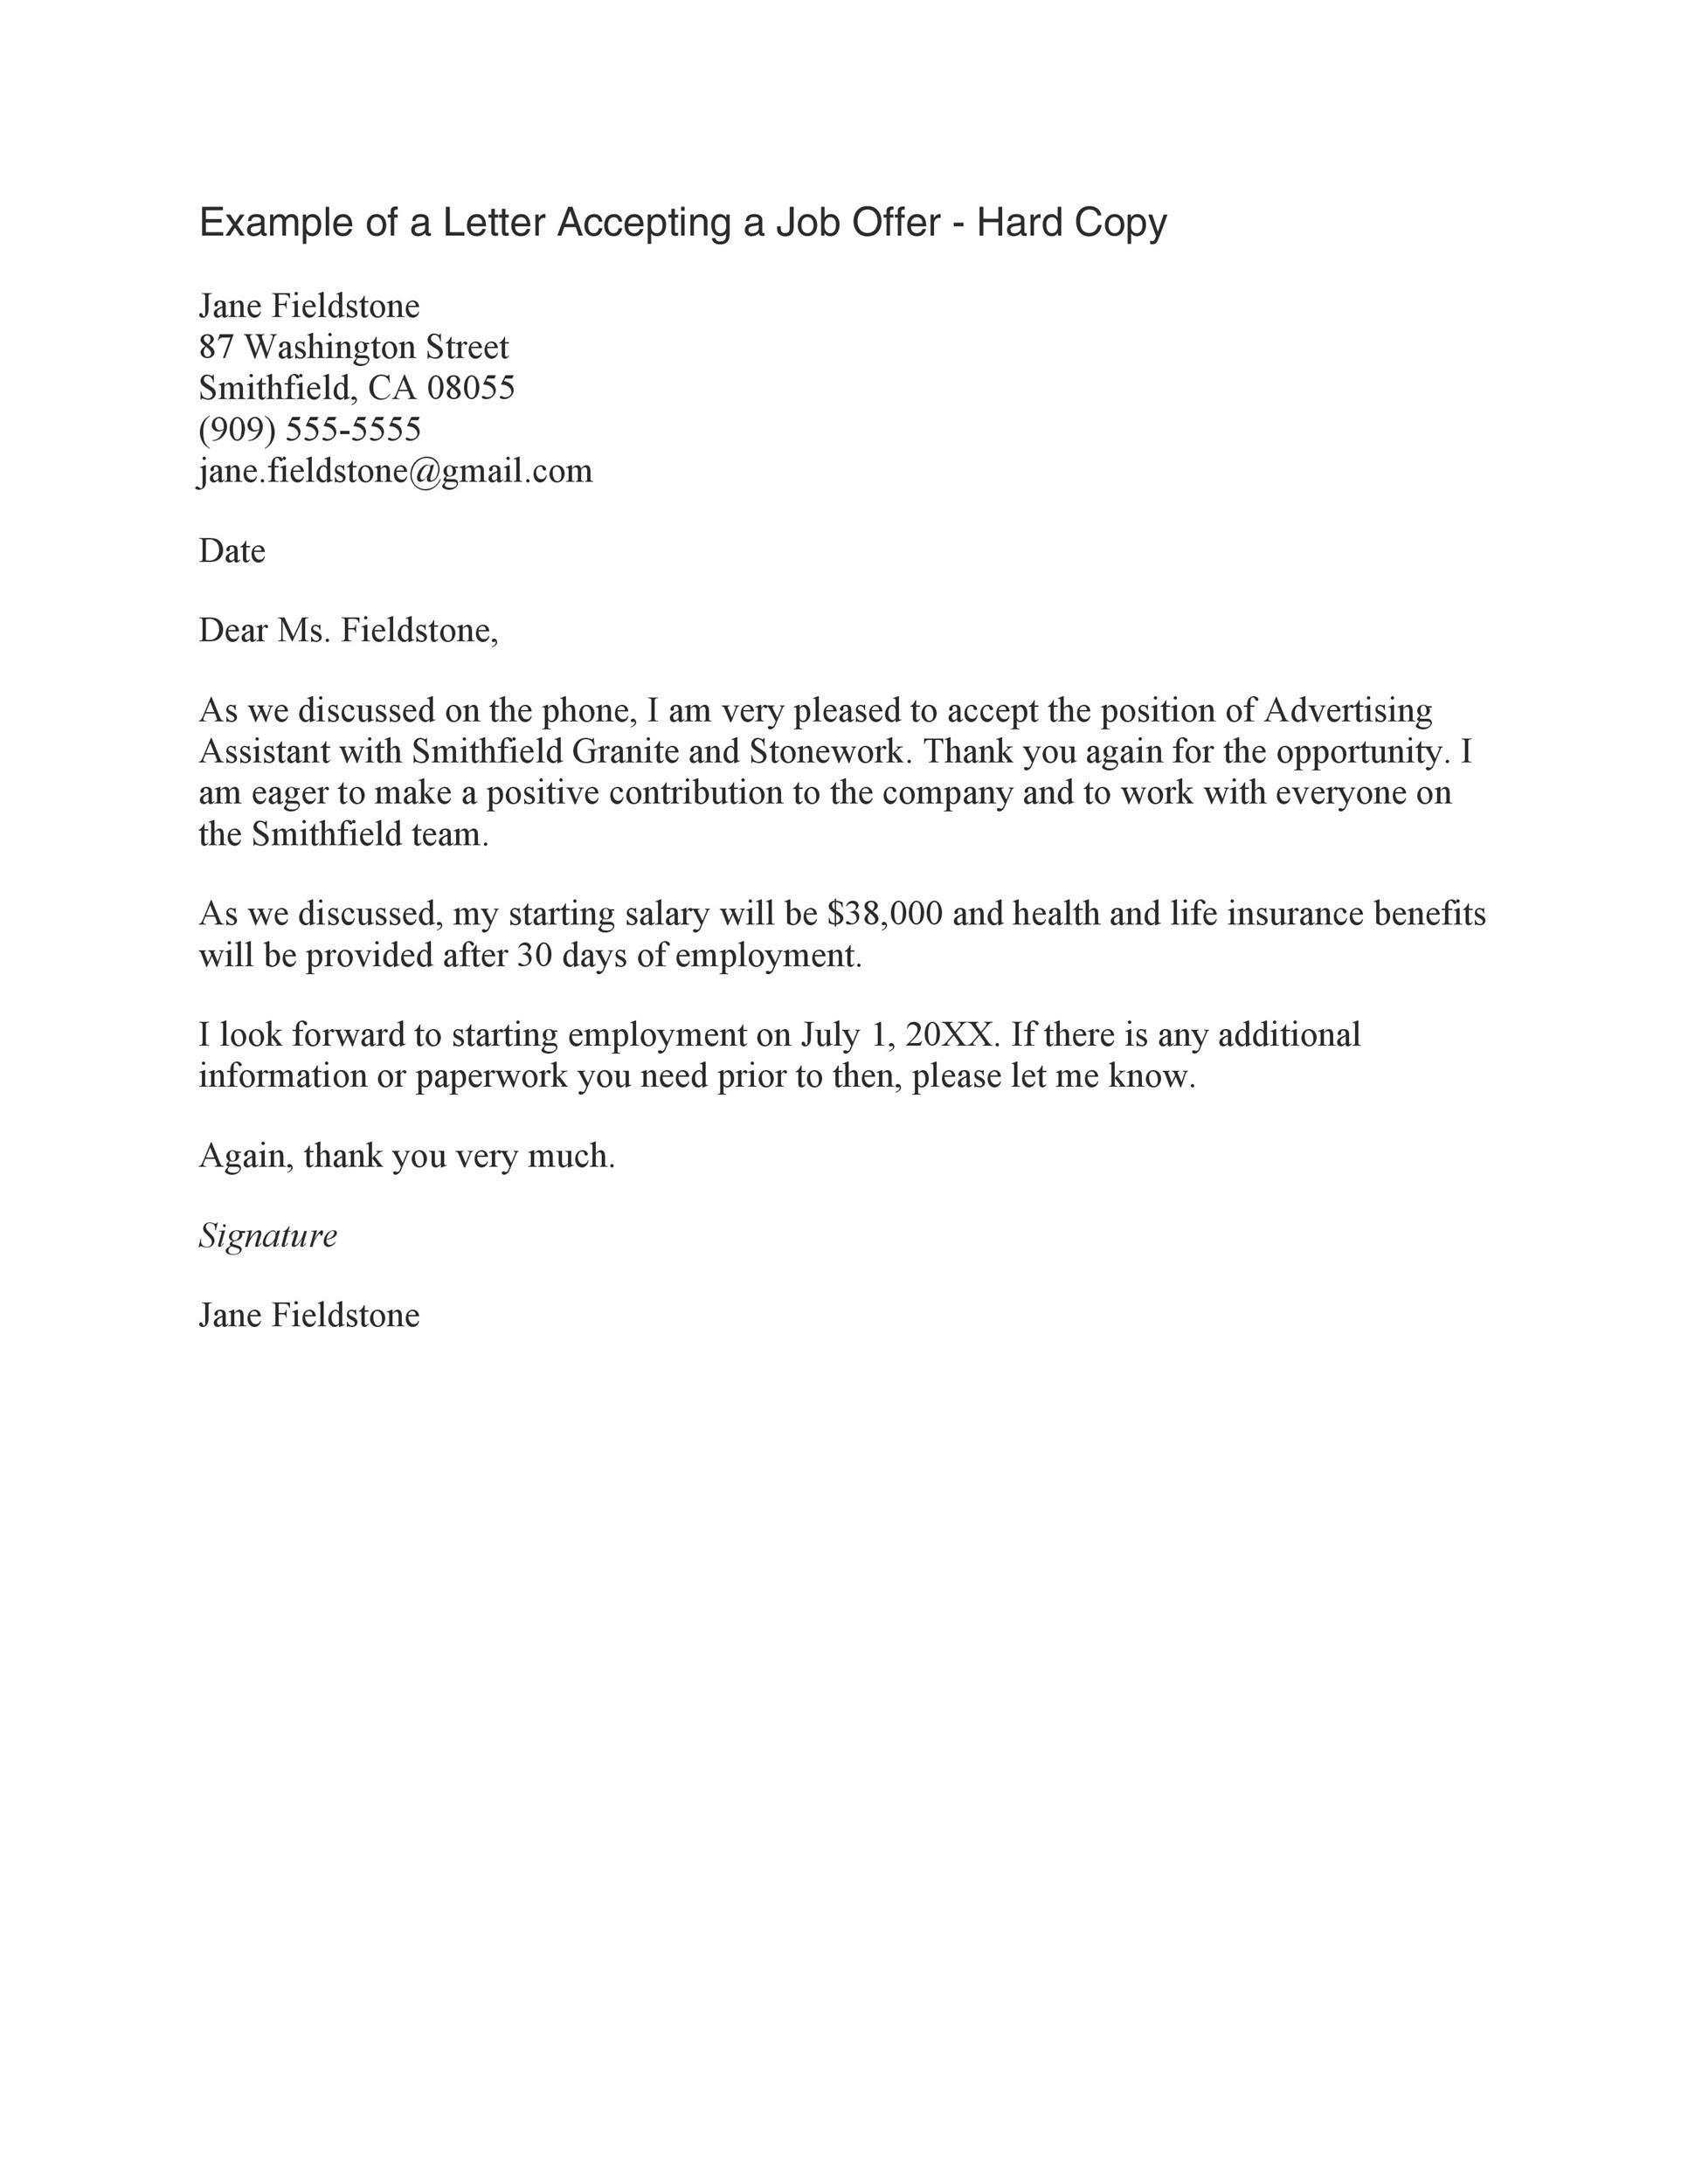 sample letter to accept a job offer